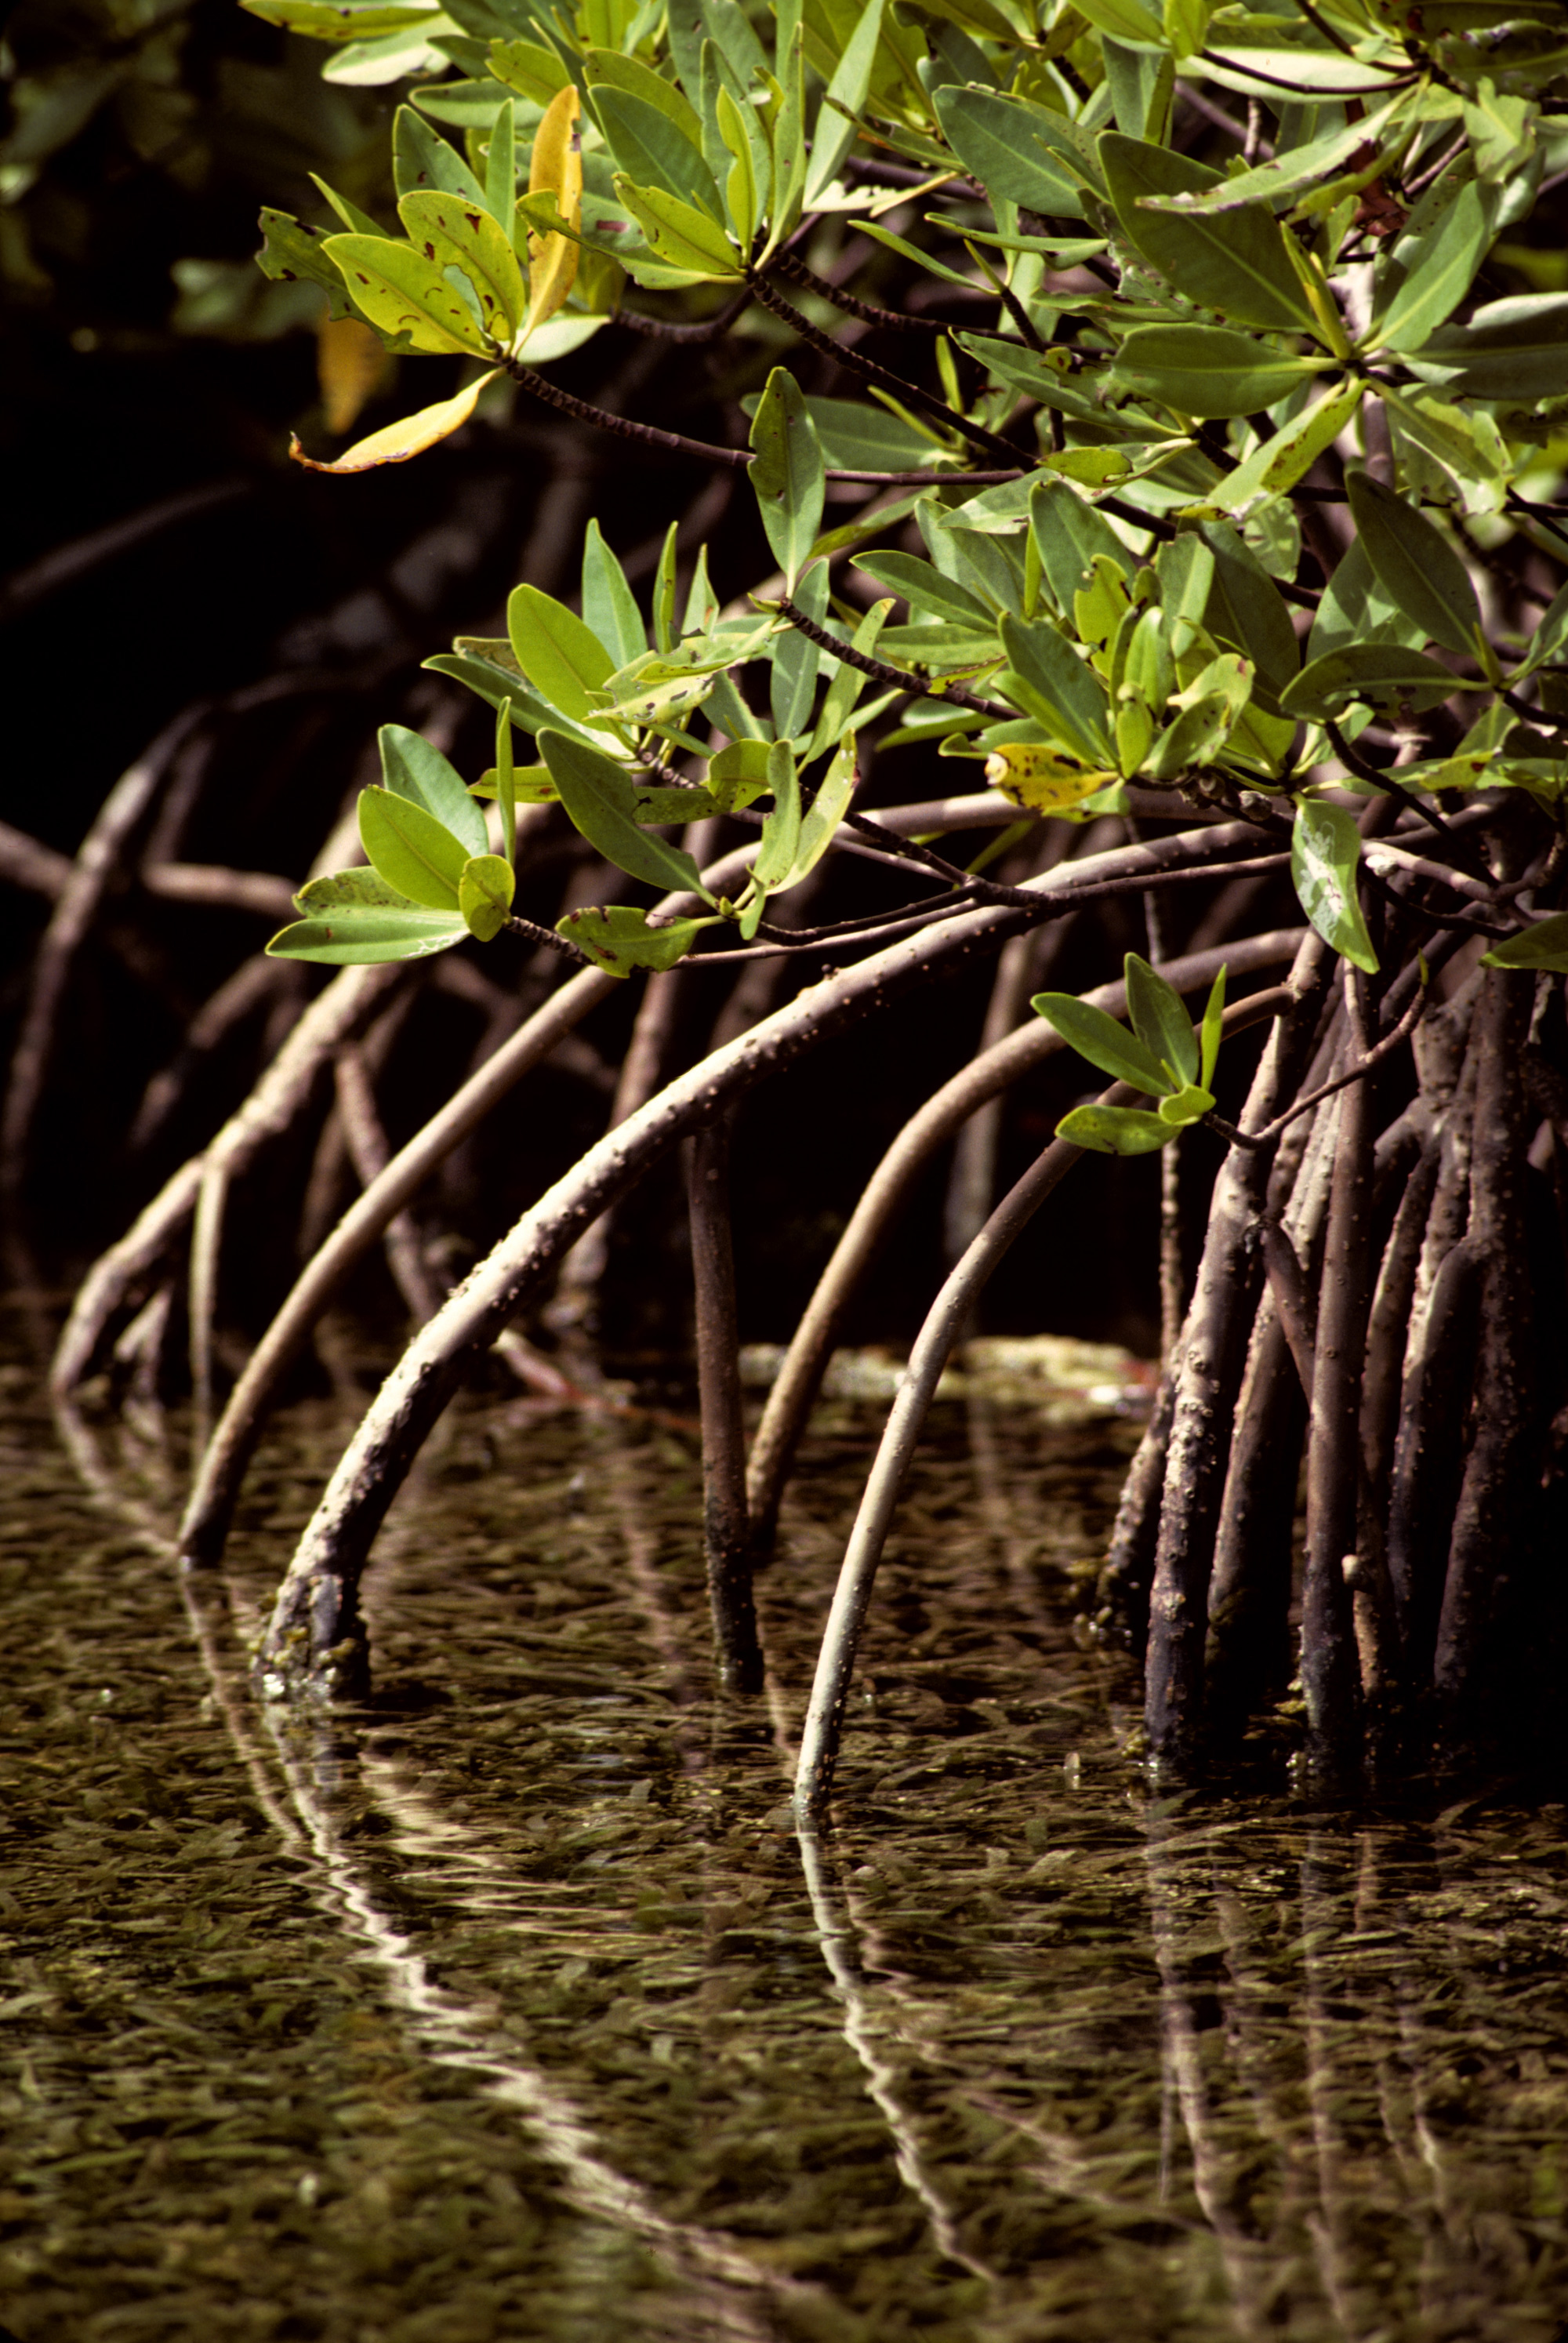 Arching mangrove roots help keep trunks upright in soft sediments at water's edge.<div class='credit'><strong>Credit:</strong> Arching mangrove roots help keep trunks upright in soft sediments at water's edge.</div>